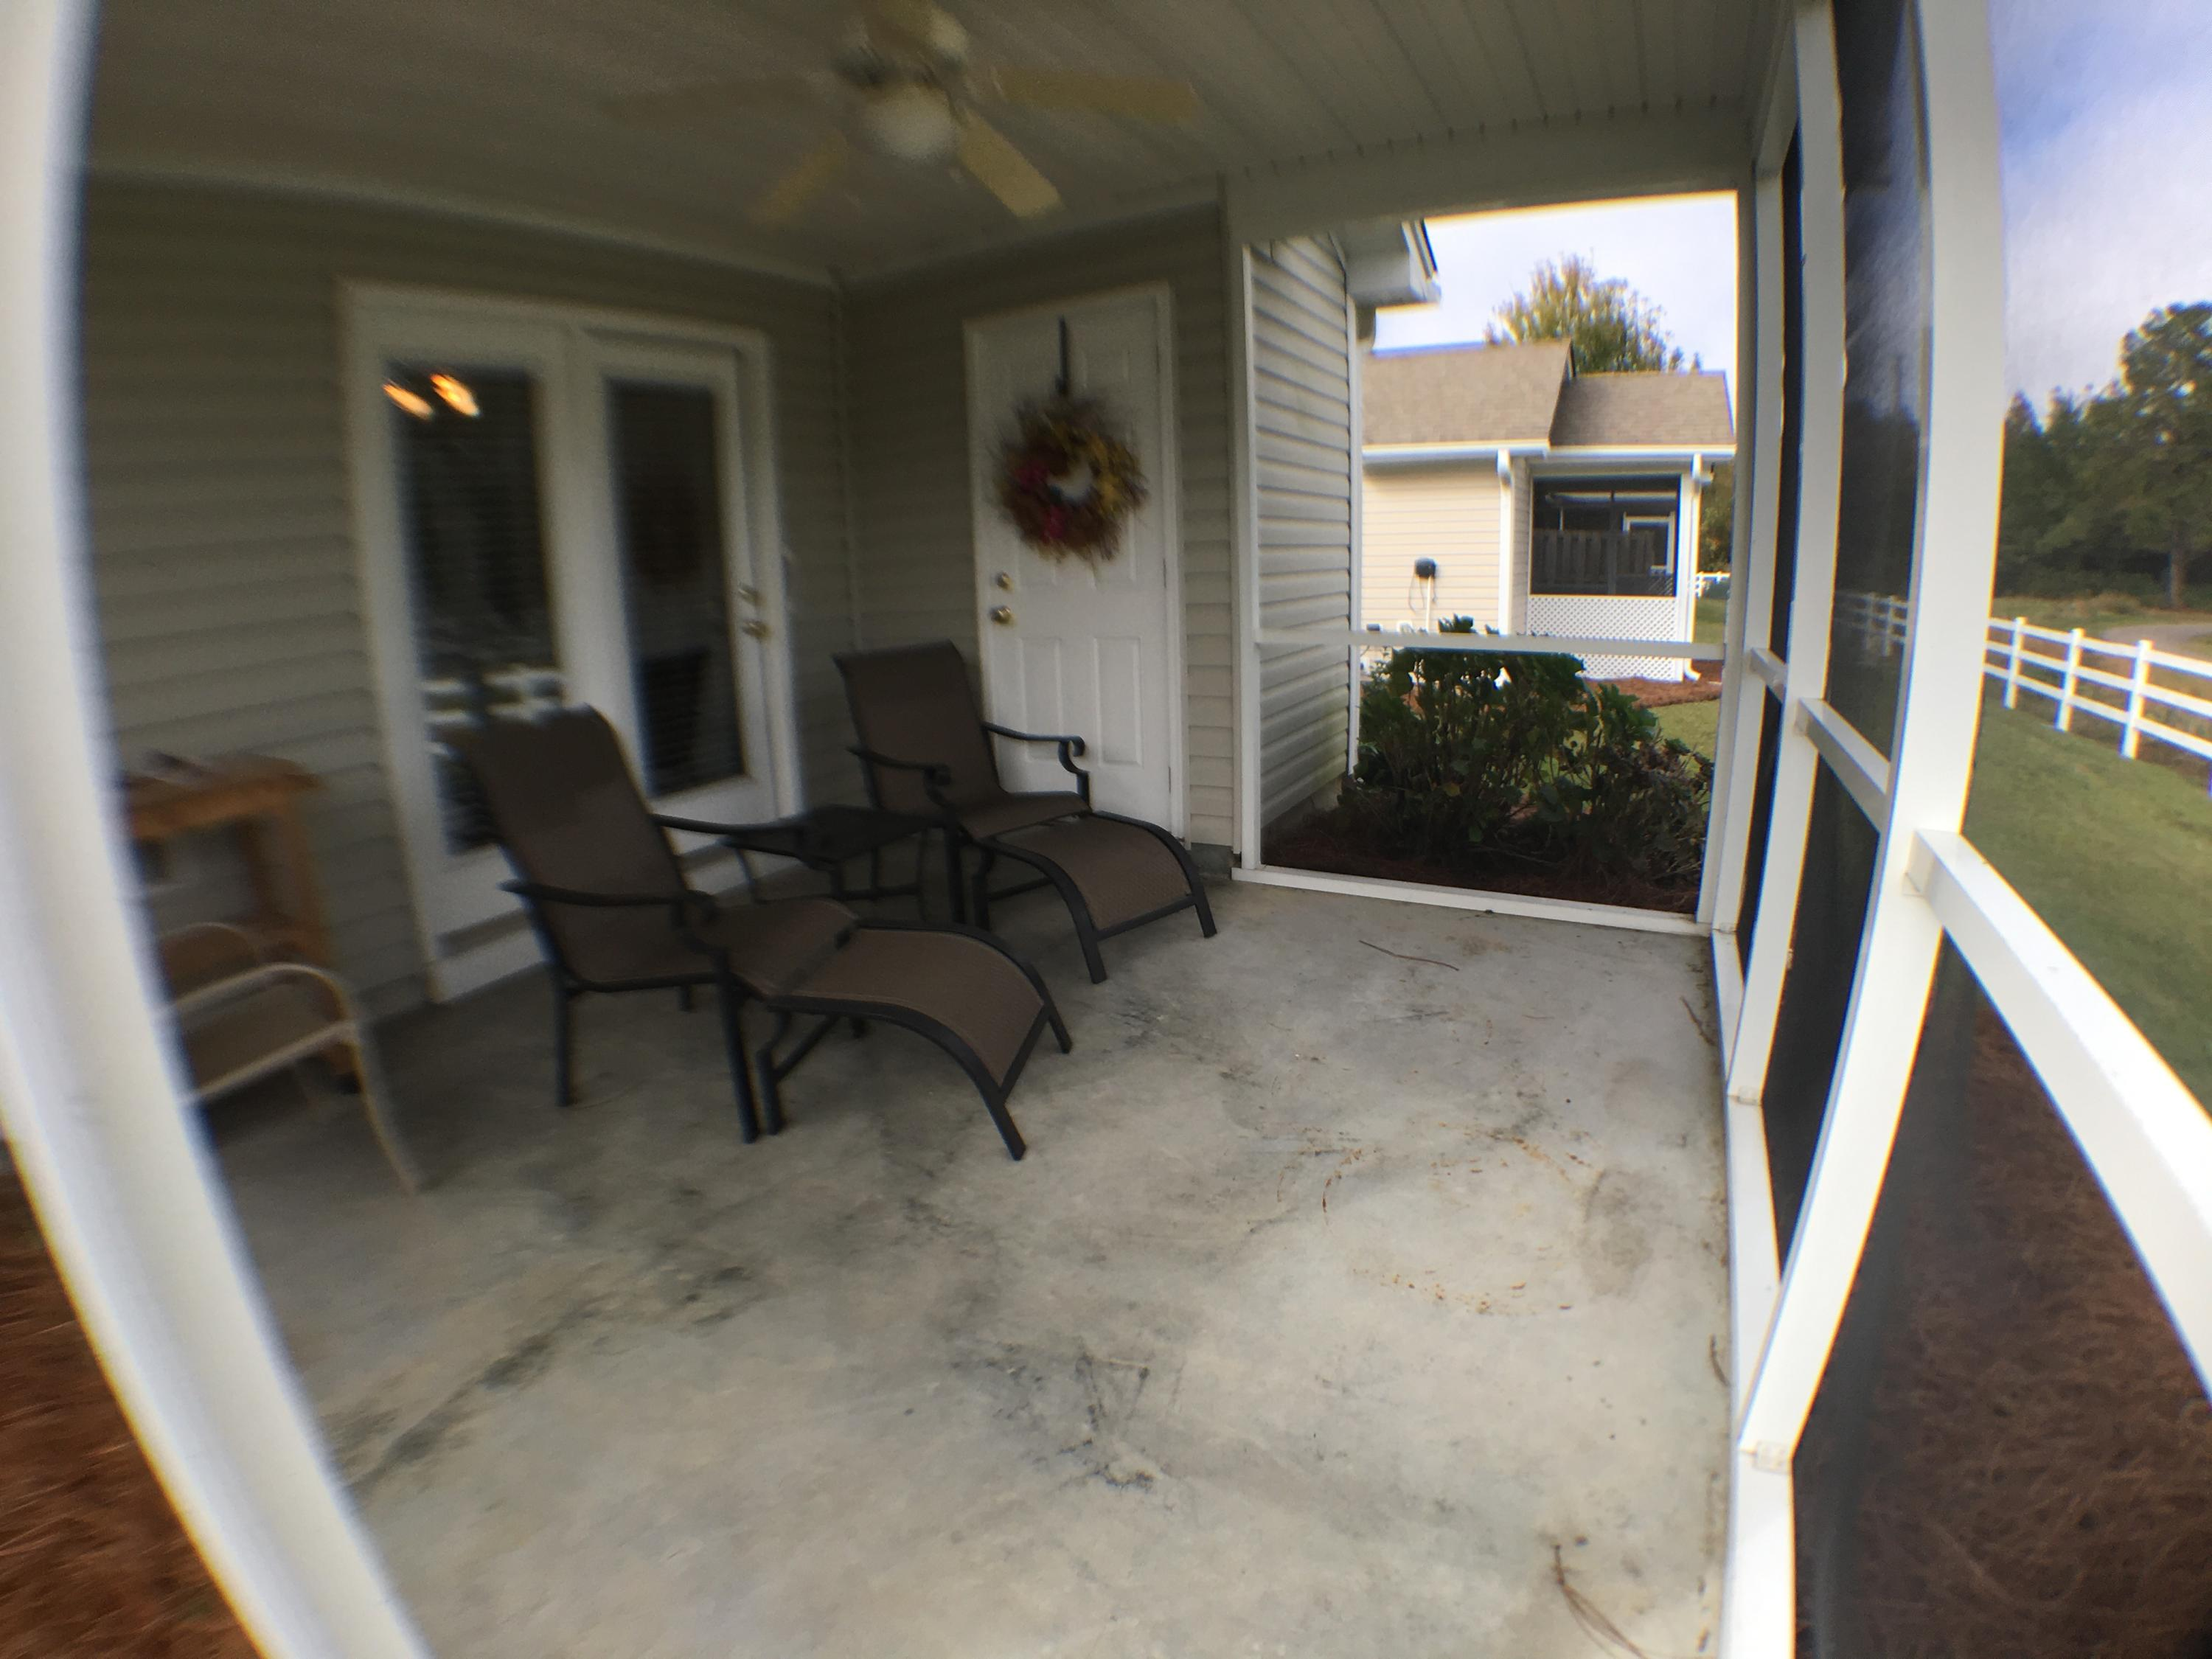 126 Townsend Way Summerville, SC 29483